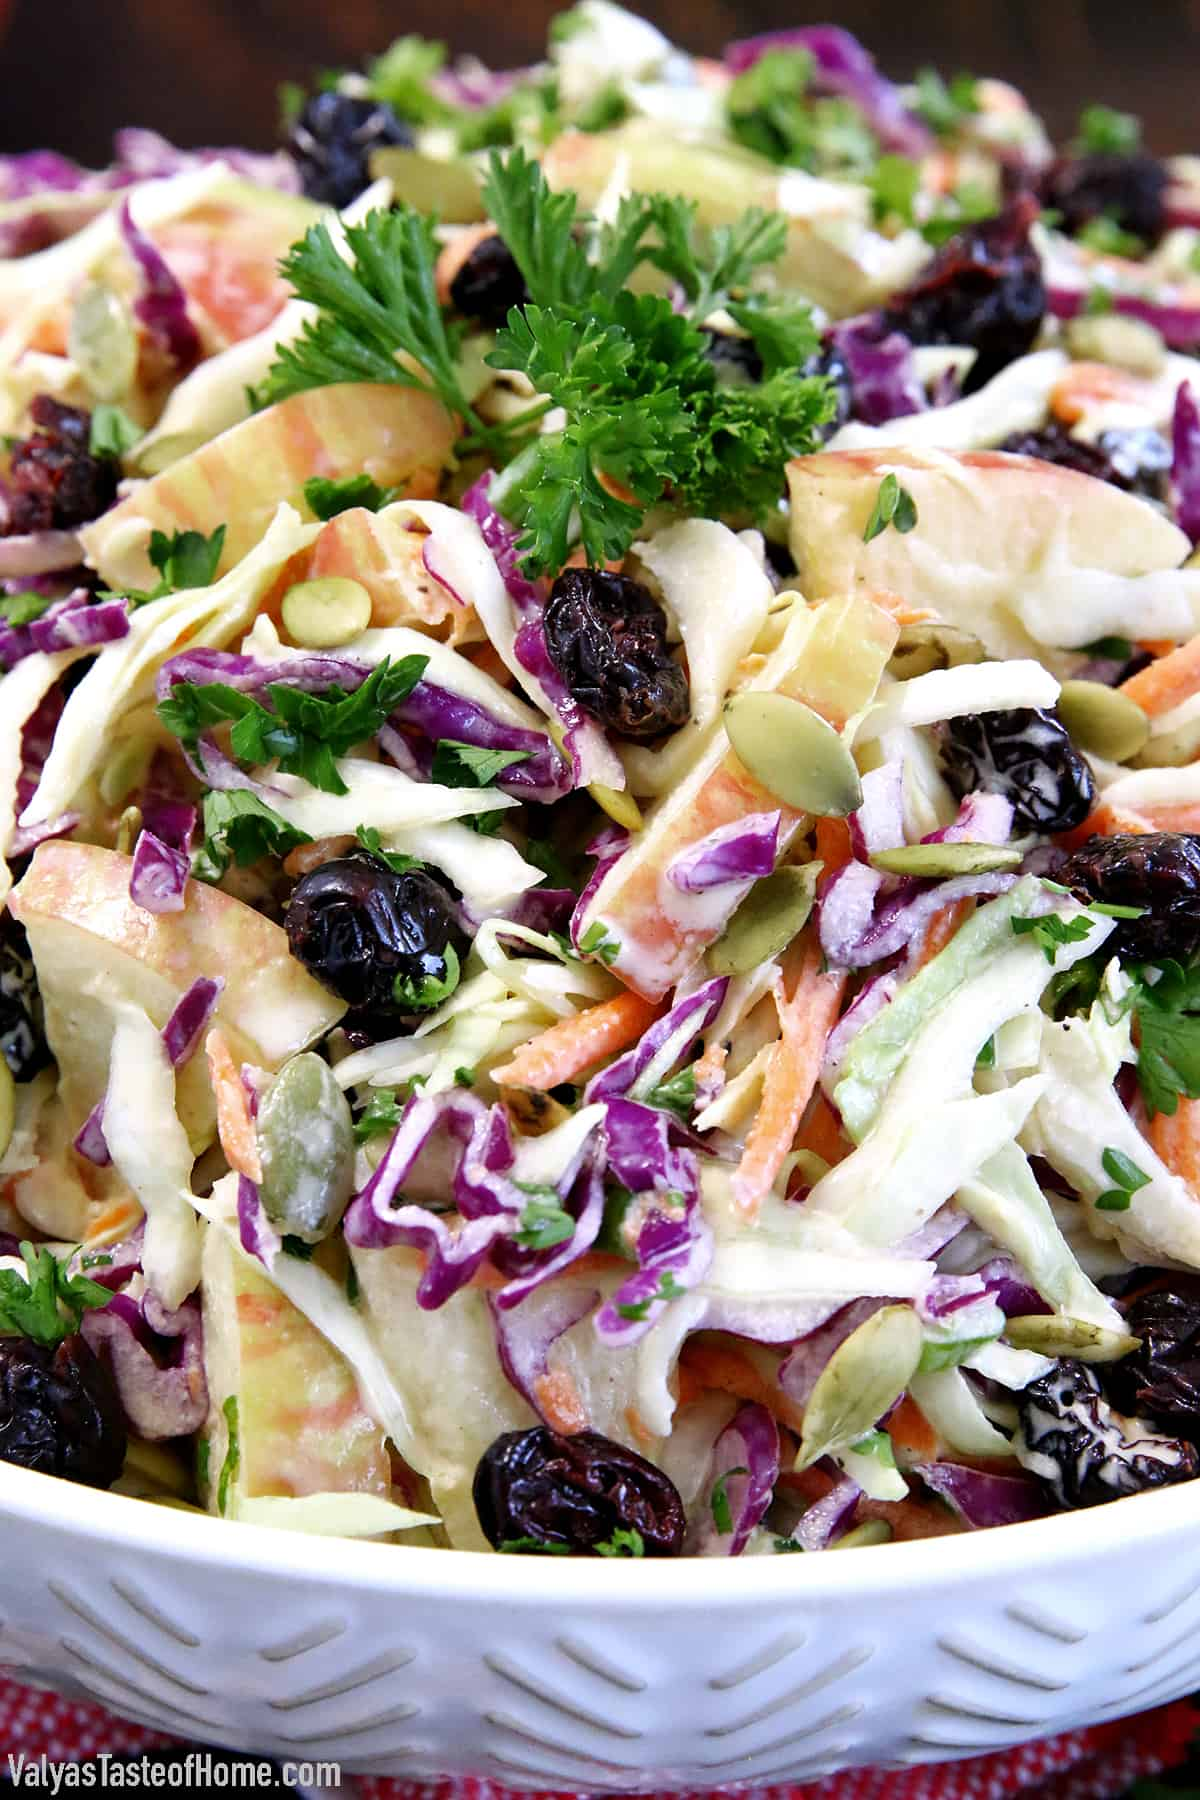 You've got the chops, my friend! This Easy Apple Cranberry Pumpkin Coleslaw Recipe is a must-have on your holiday table. There is nothing quite like a refreshing fresh and crunchy salad like this, bursting with tasty Fall flavors to accompany that scrumptious main dish on your plate.